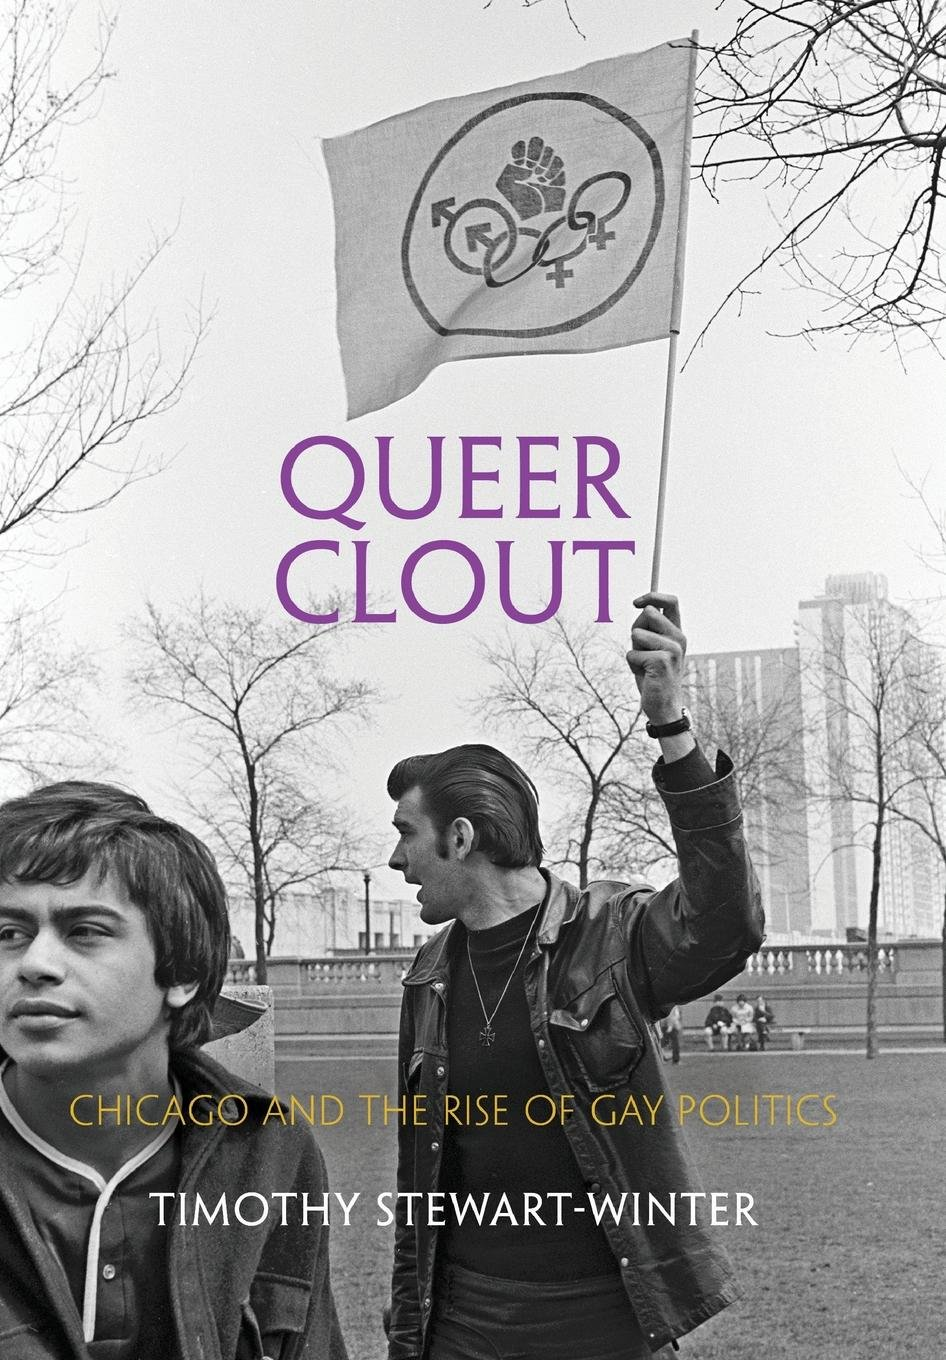 Queer Clout: Chicago and the Rise of Gay Politics (Politics and Culture in Modern America) pdf